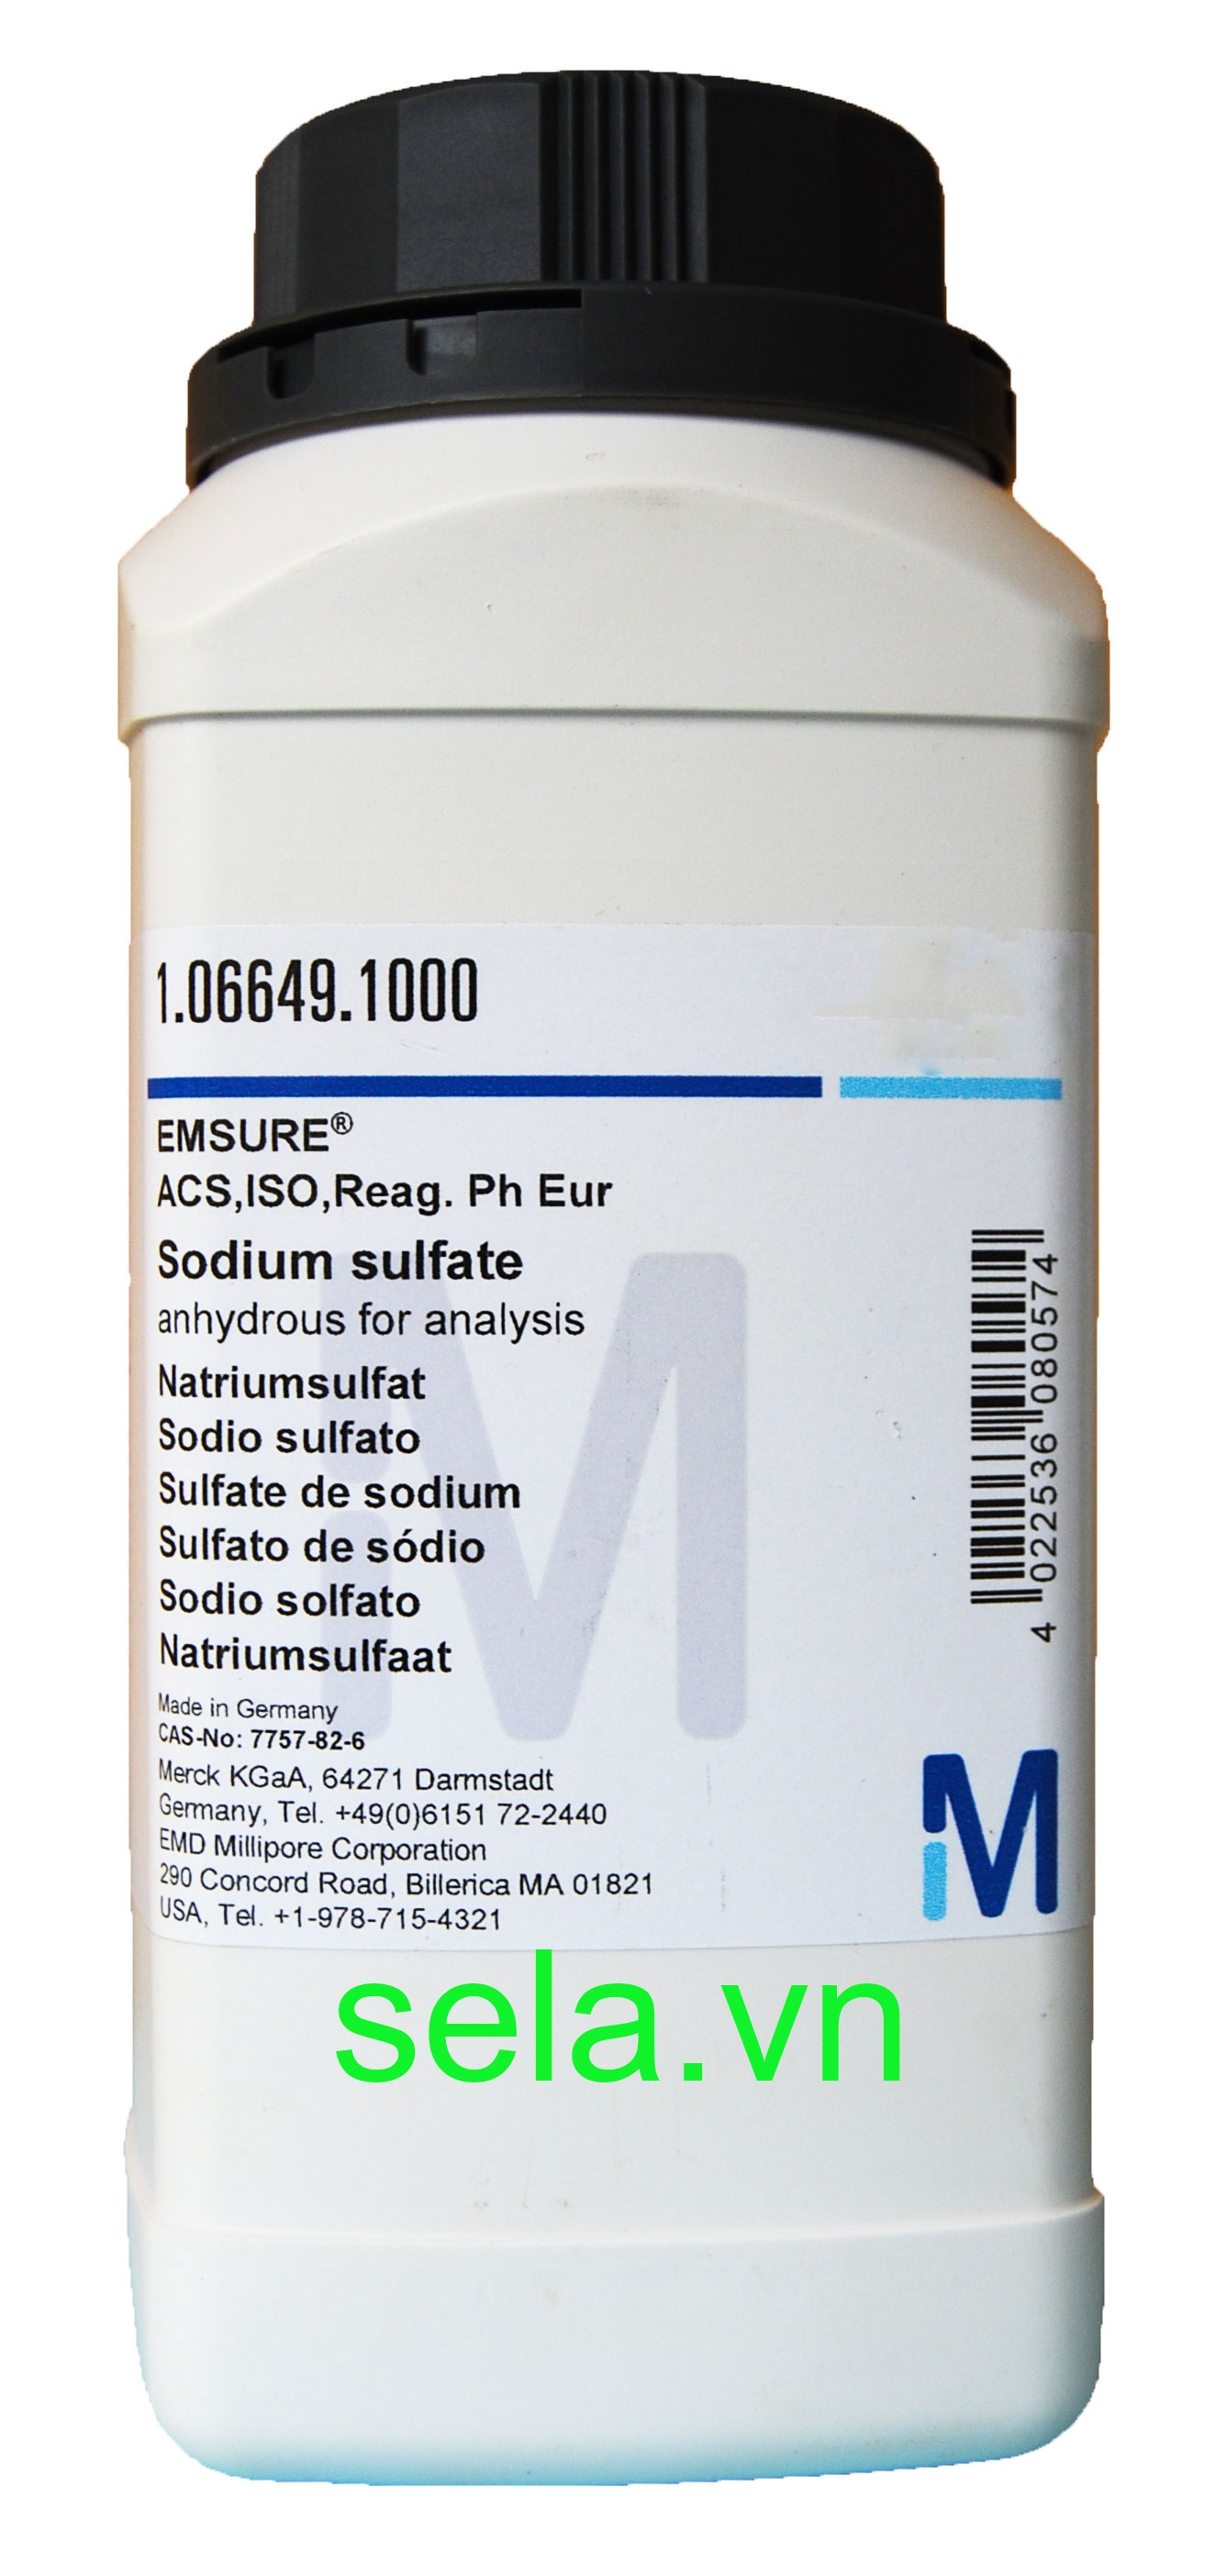 Sodium sulfate anhydrous for analysis EMSURE® ACS,ISO,Reag. Ph Eur